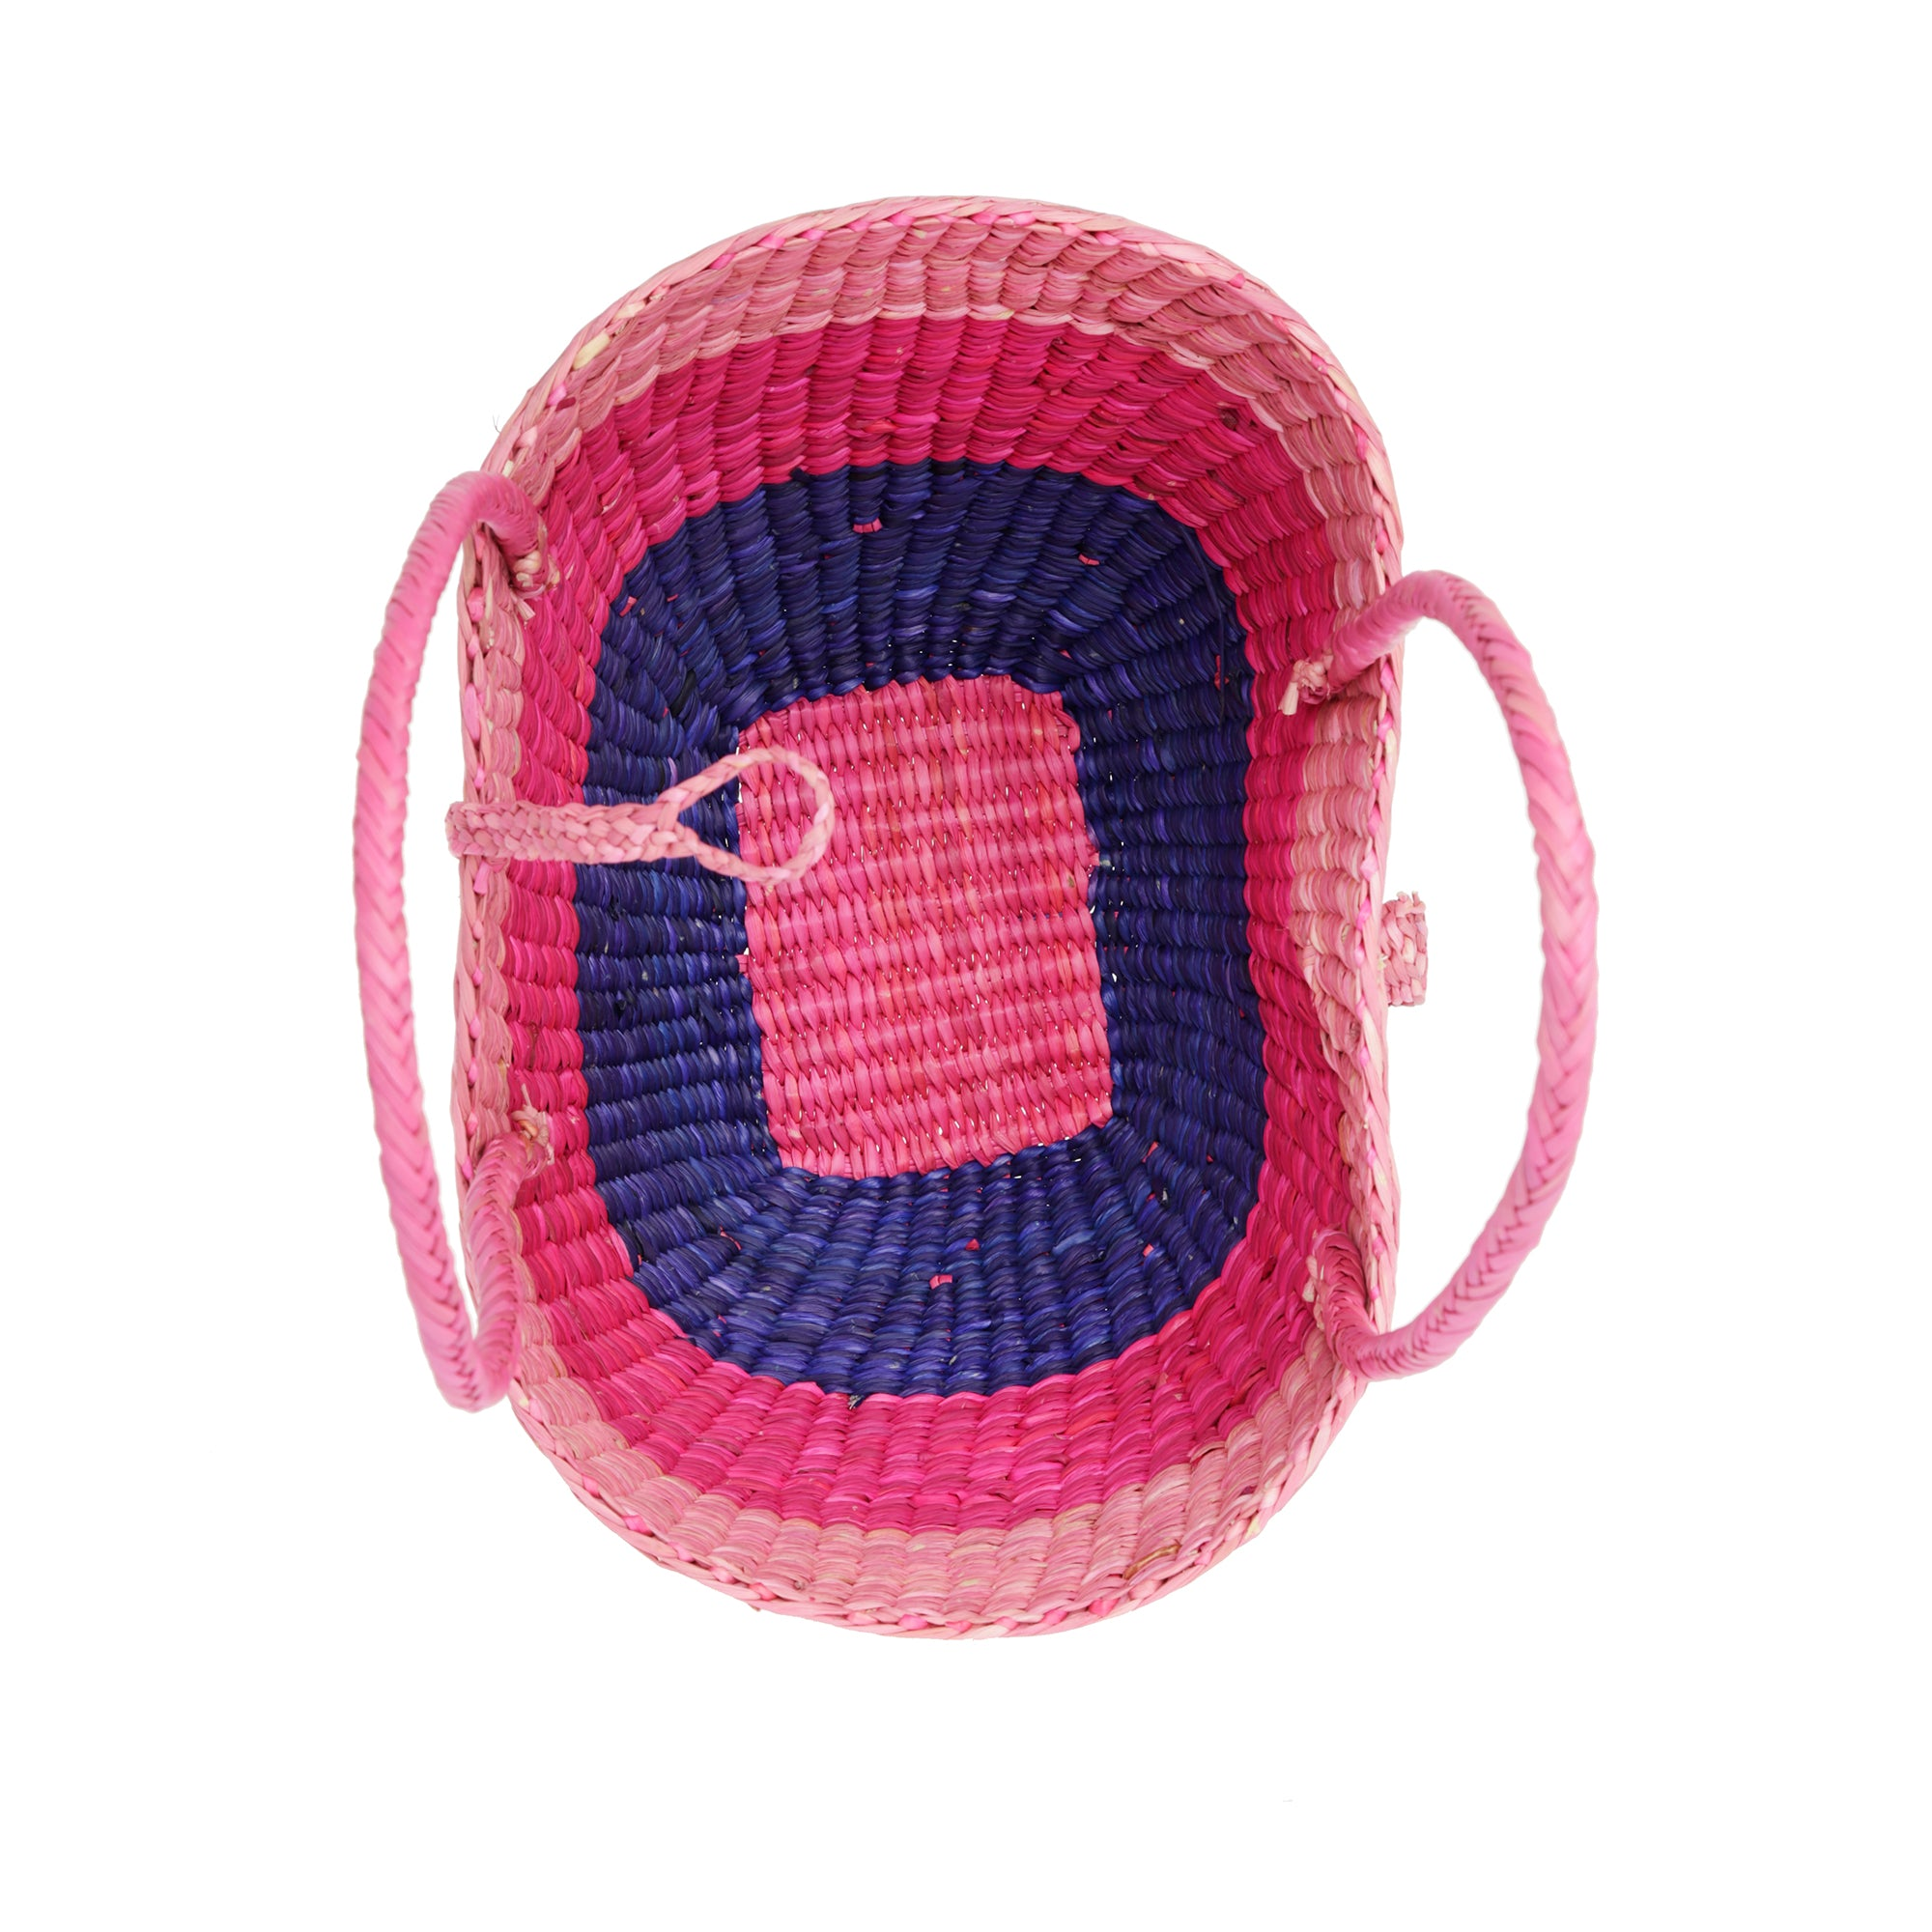 Basket Tasche Basketbag Korb Summer Sommer itbag